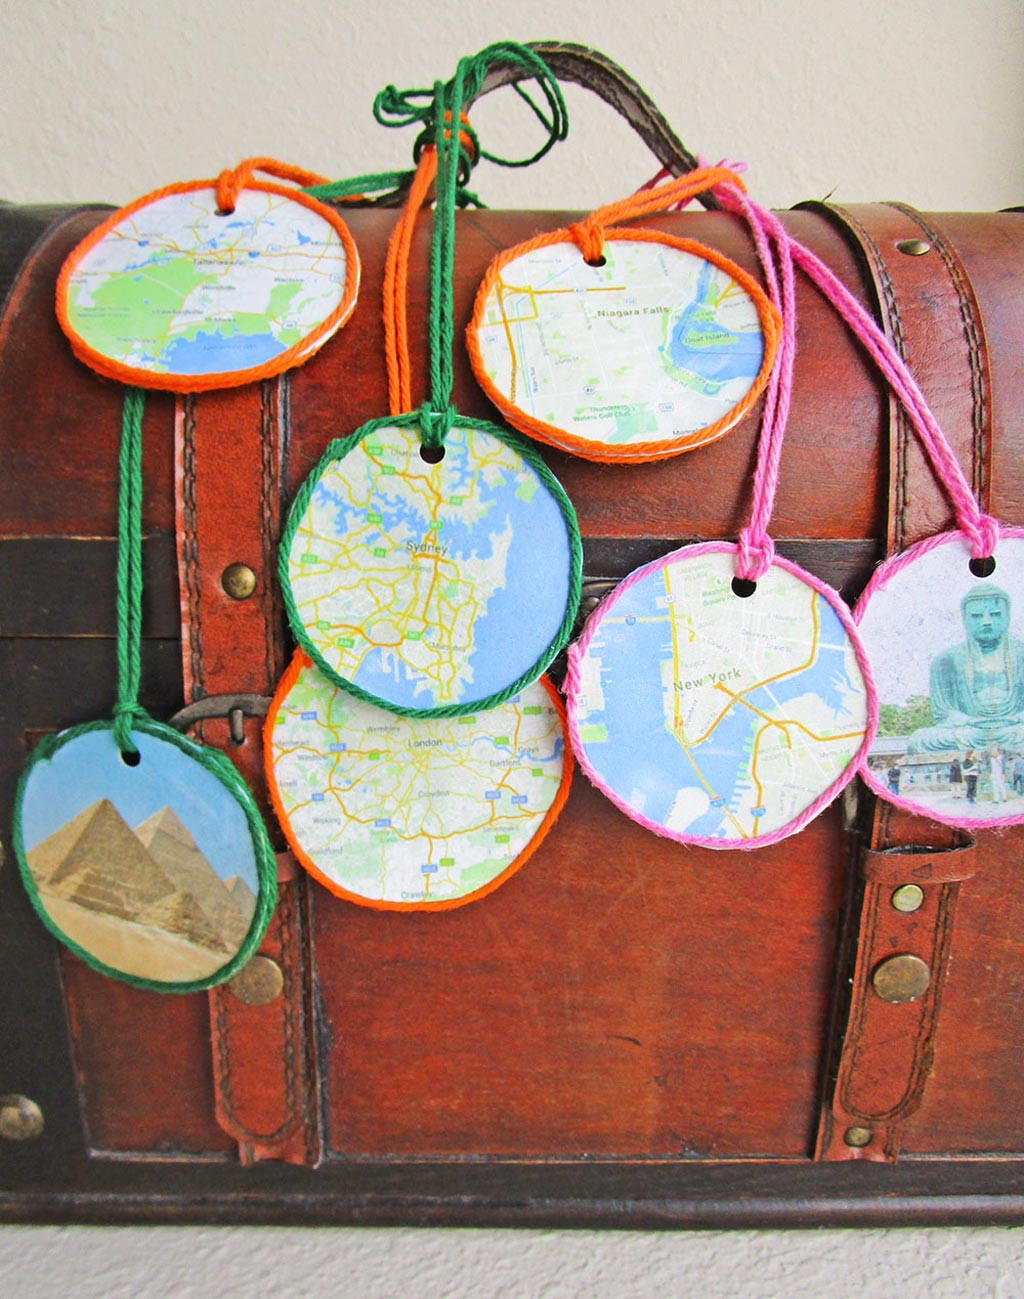 Best ideas about Crafts For Preschool Kids . Save or Pin Me on the Map The Crafting Chicks Now.